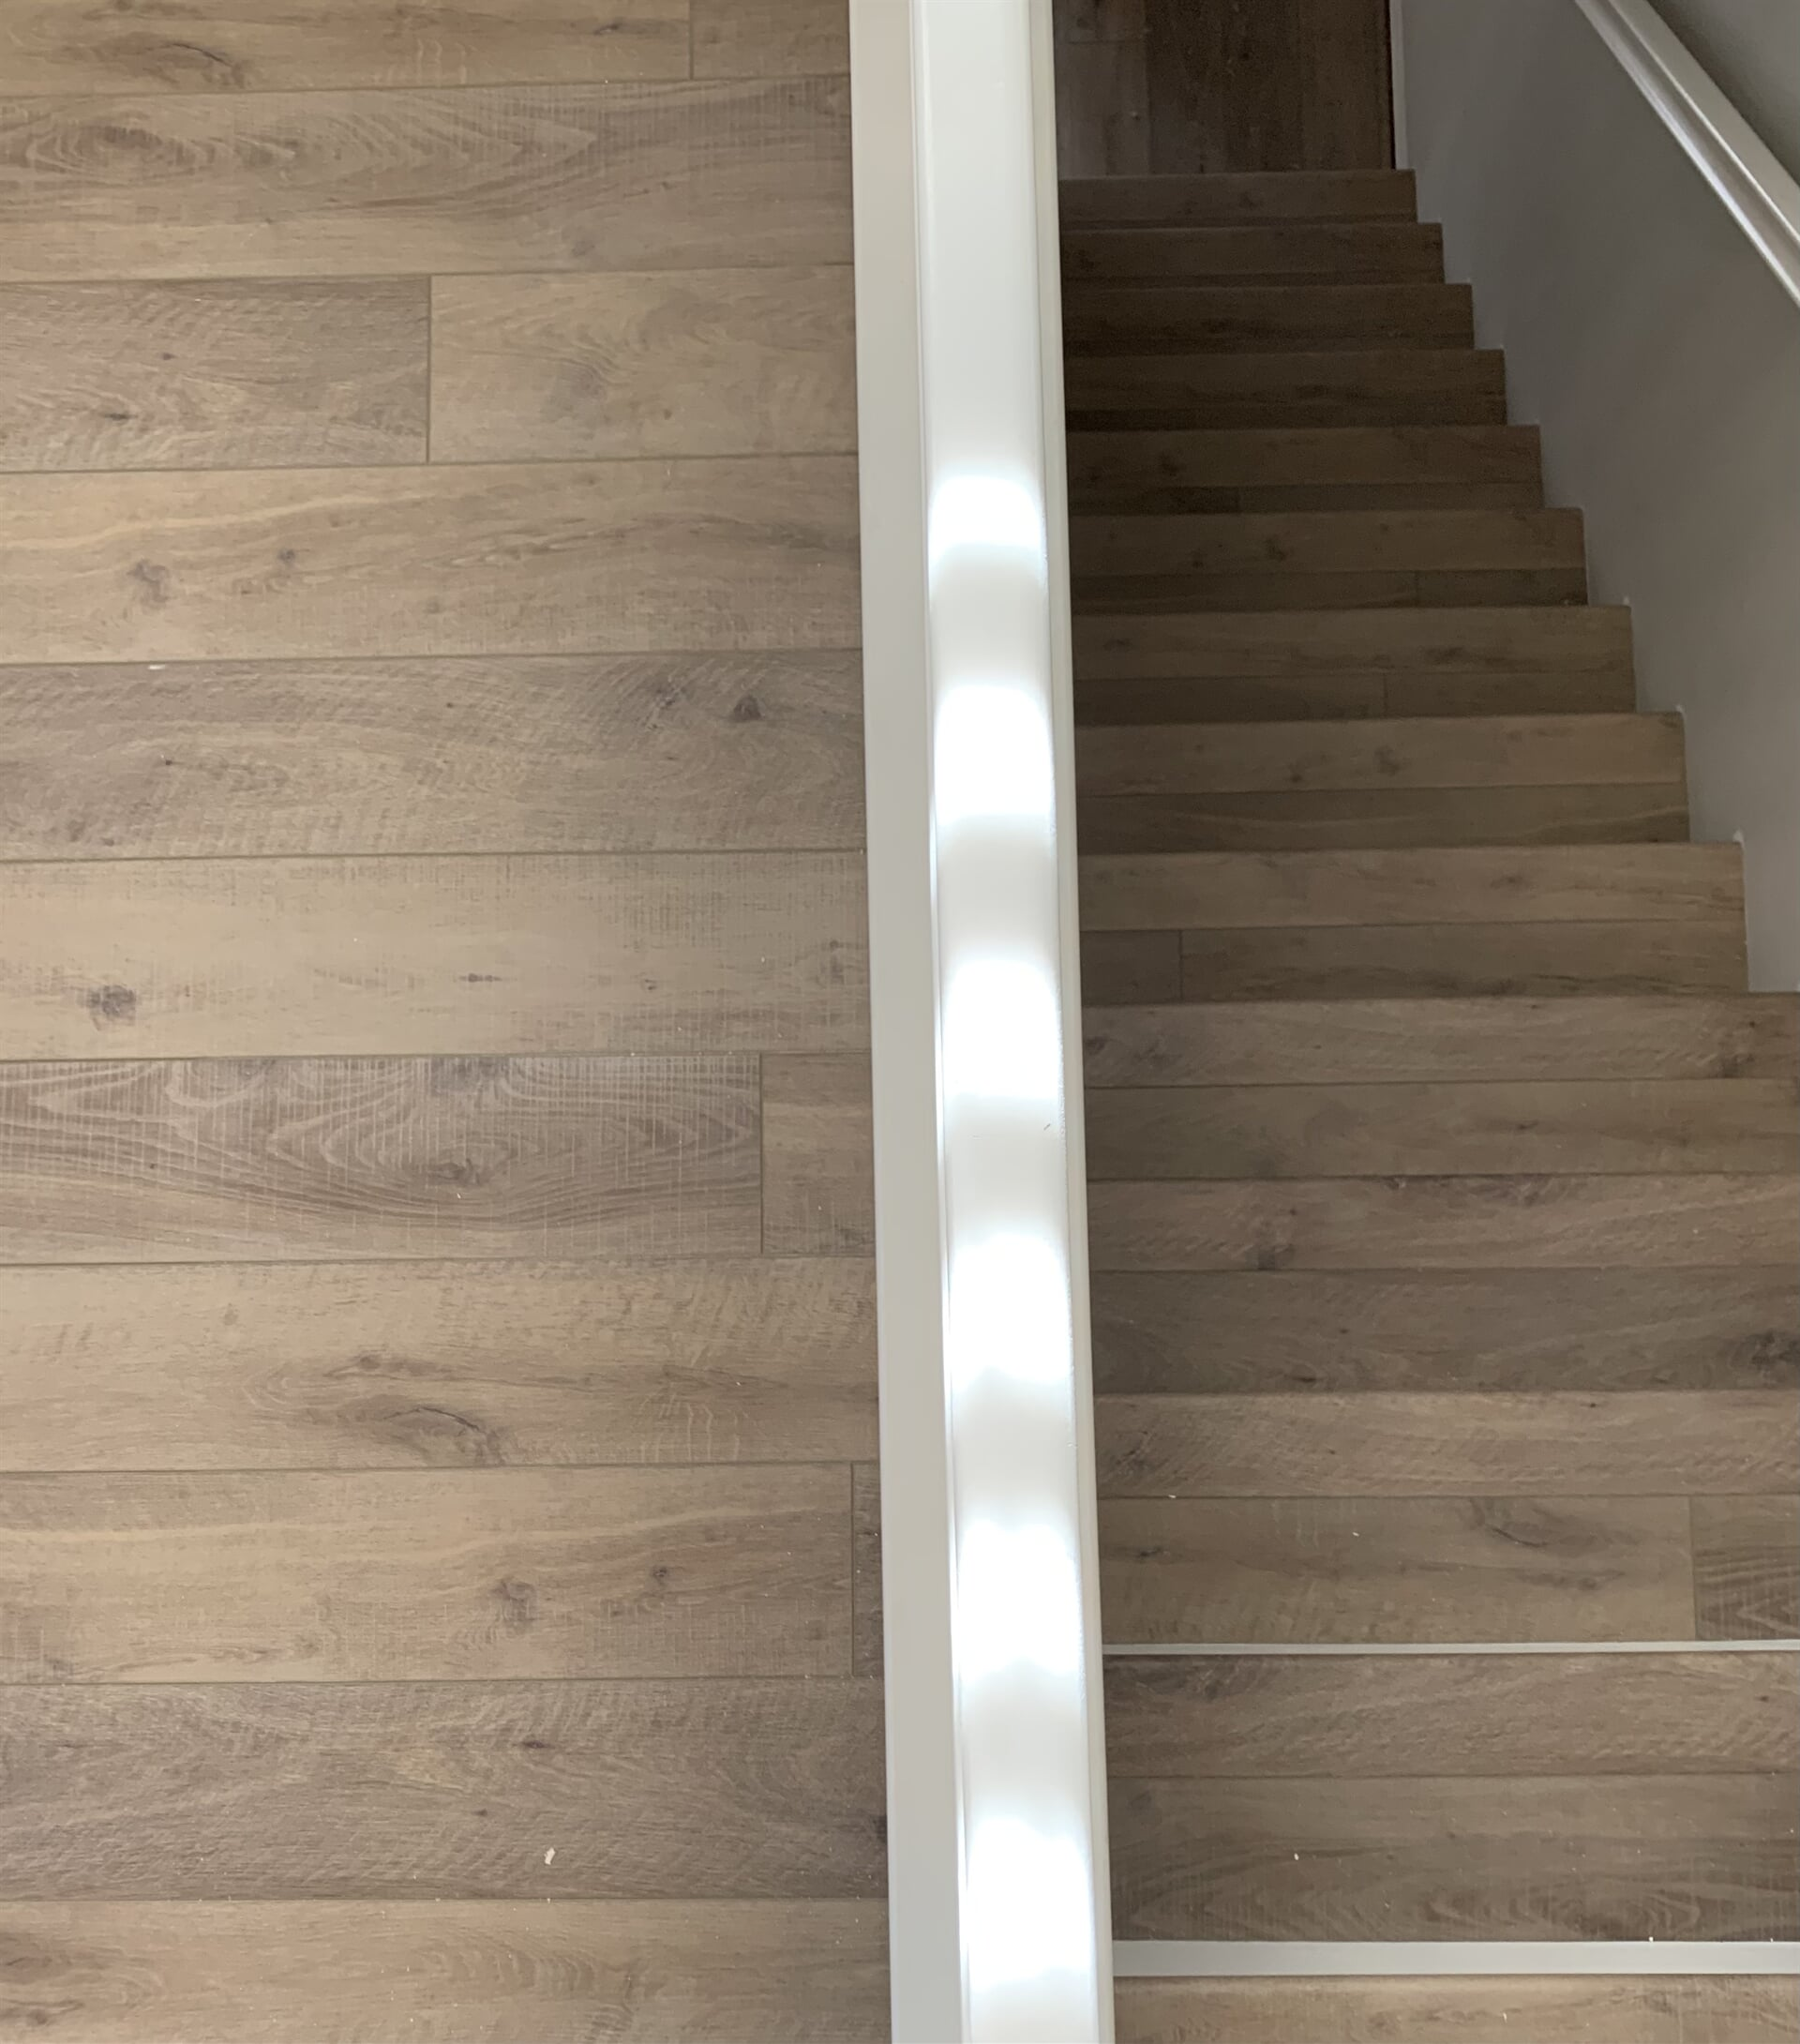 Laminate flooring in Temecula, CA from Hardwood Floors Outlet